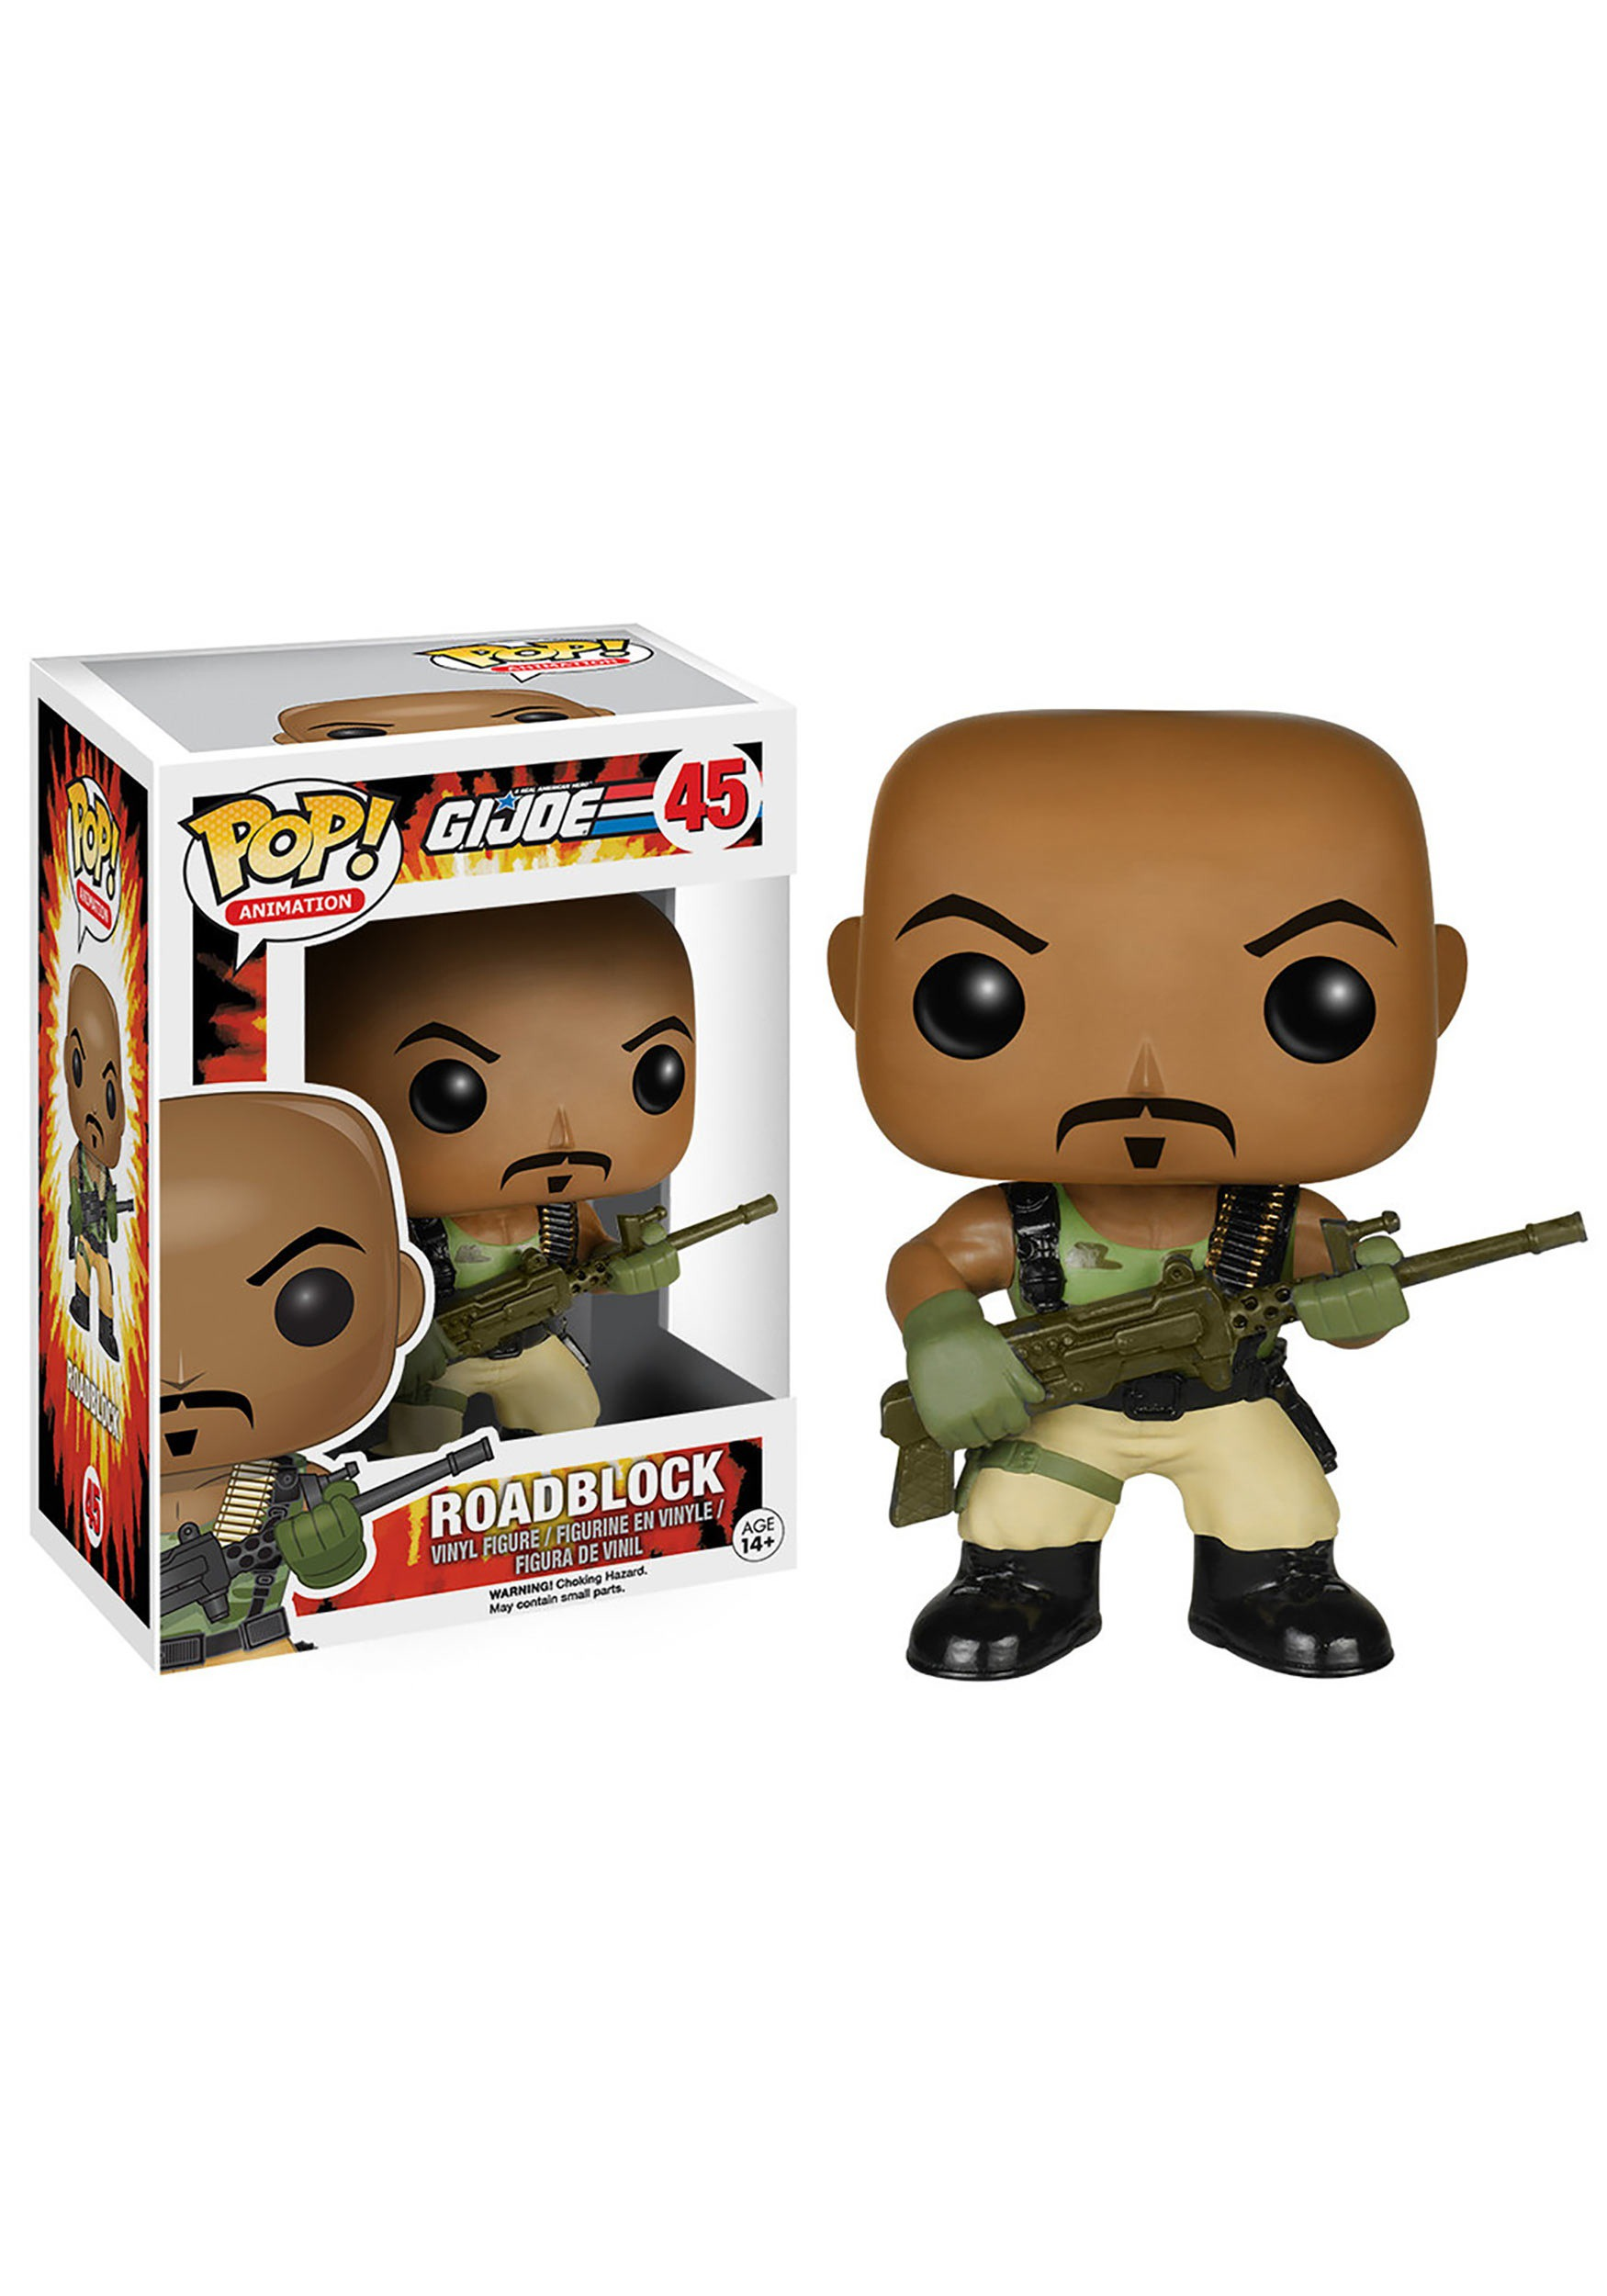 POP! G.I. Joe Roadblock Vinyl Figure FN6137